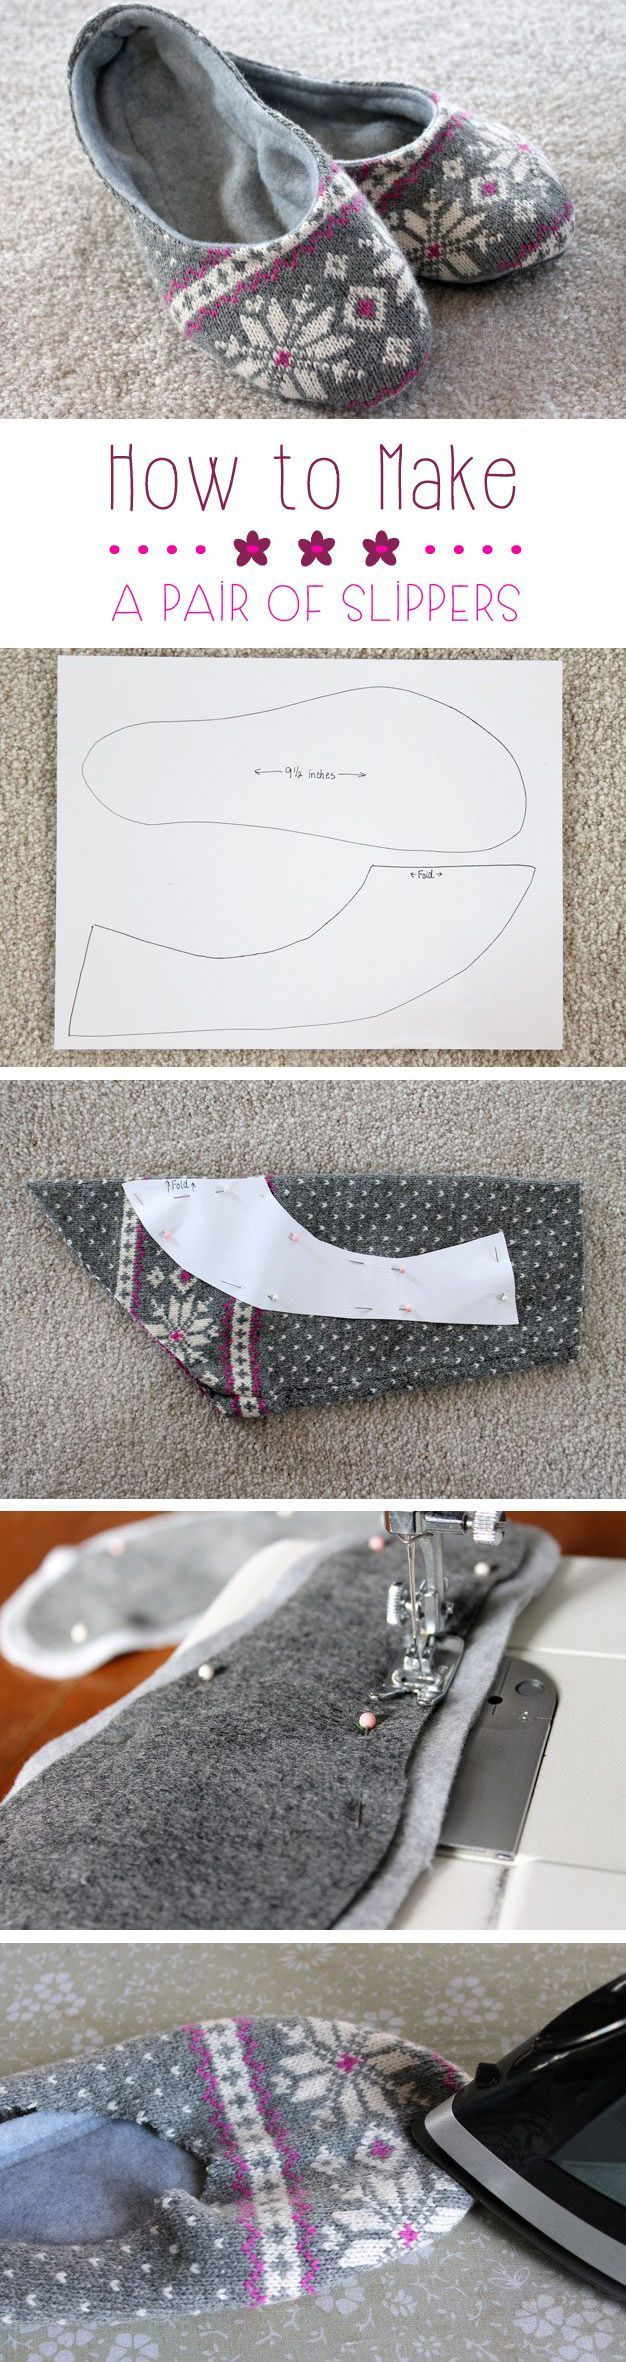 How to make Slippers: Upcycling has quickly become on our favorites things to do! Transform an old sweater or sweatshirt into these lovely, cozy slippers for around the house...looks easy enough!